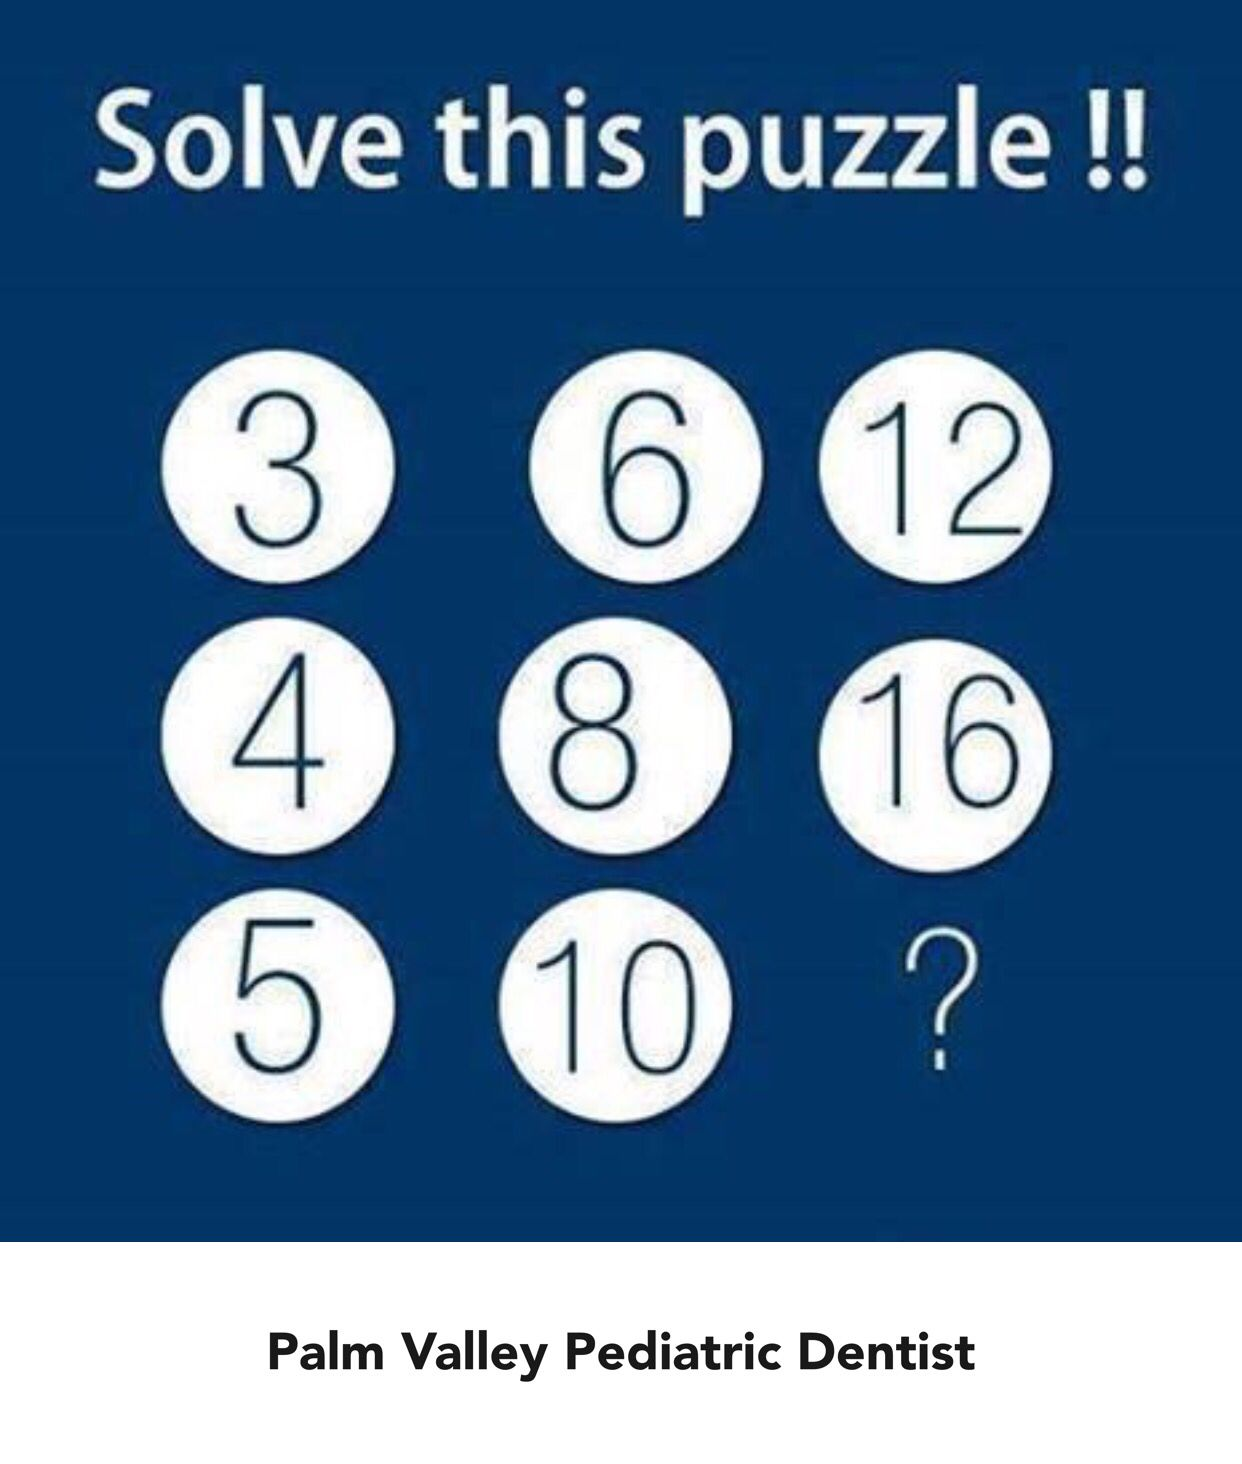 Can you solve this puzzle?! Palm Valley Pediatric